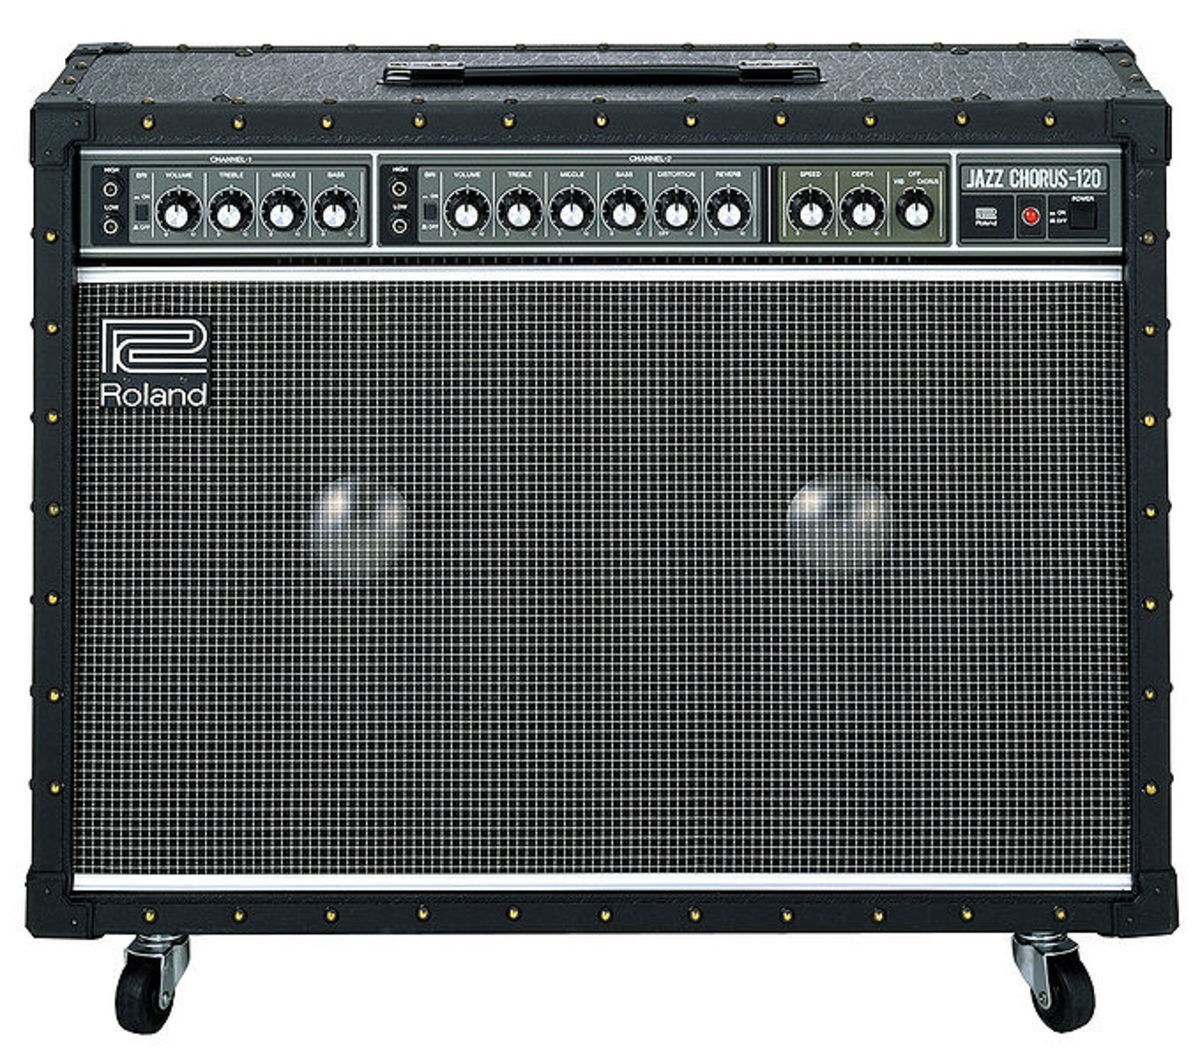 The Roland JC-120 is a solid-state amp favored for its awesome clean sound.